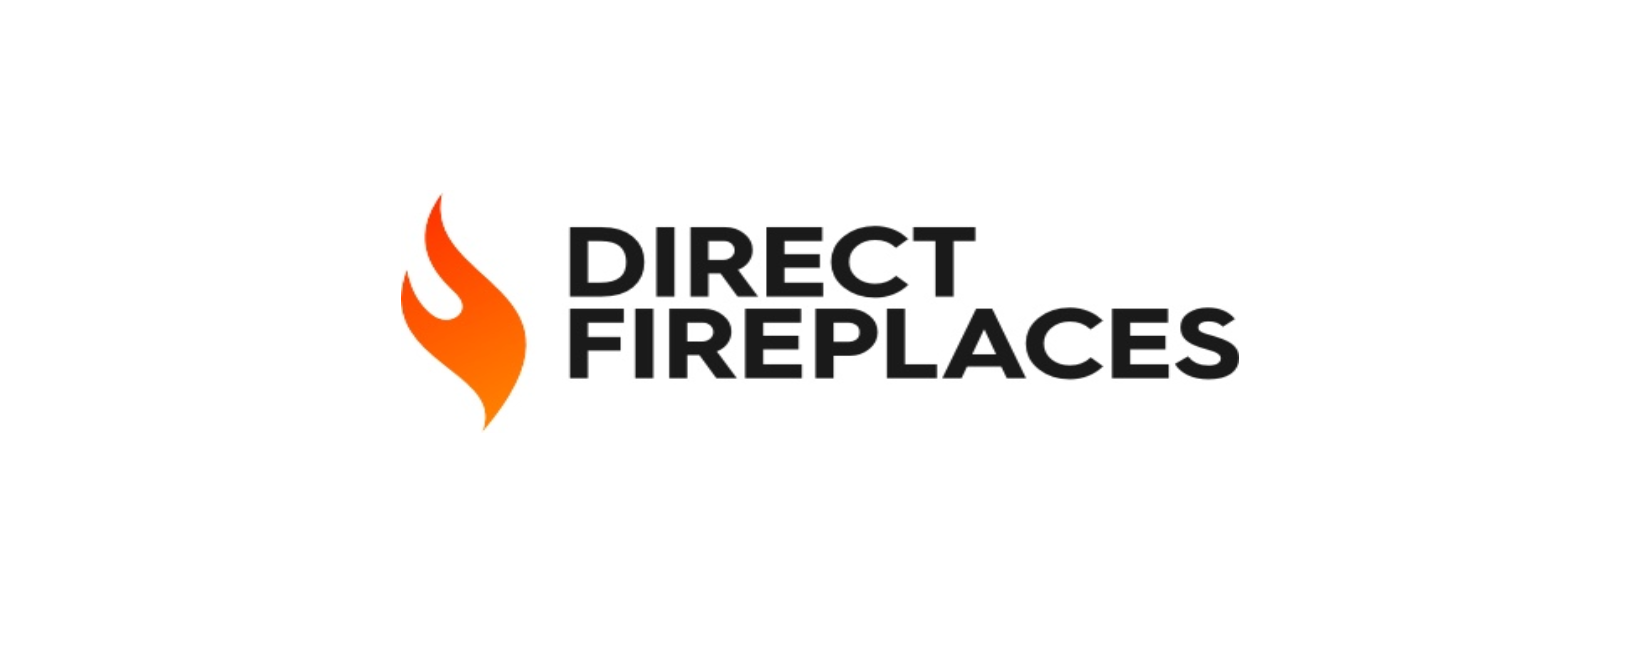 Direct Fireplaces UK Discount Code 2021